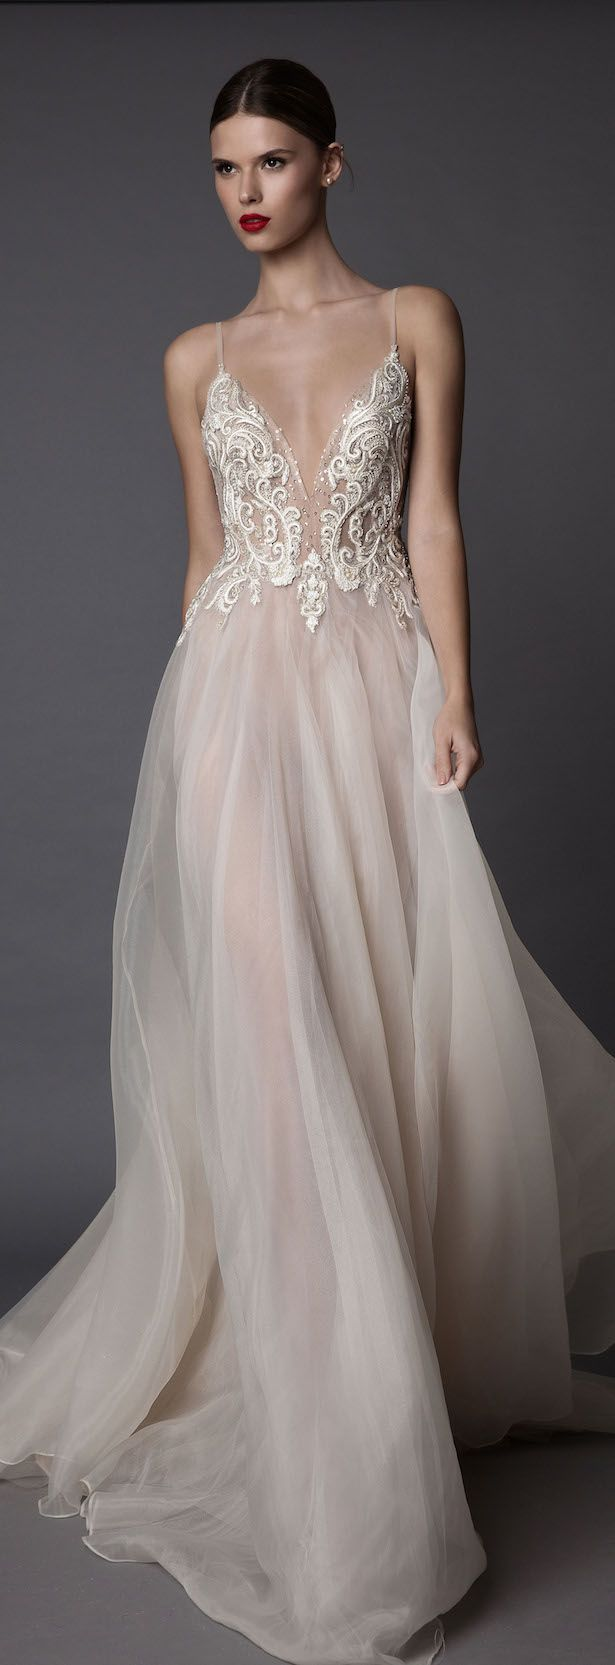 Wedding attendee dresses   best Gowns images on Pinterest  Paolo sebastian Wedding dress